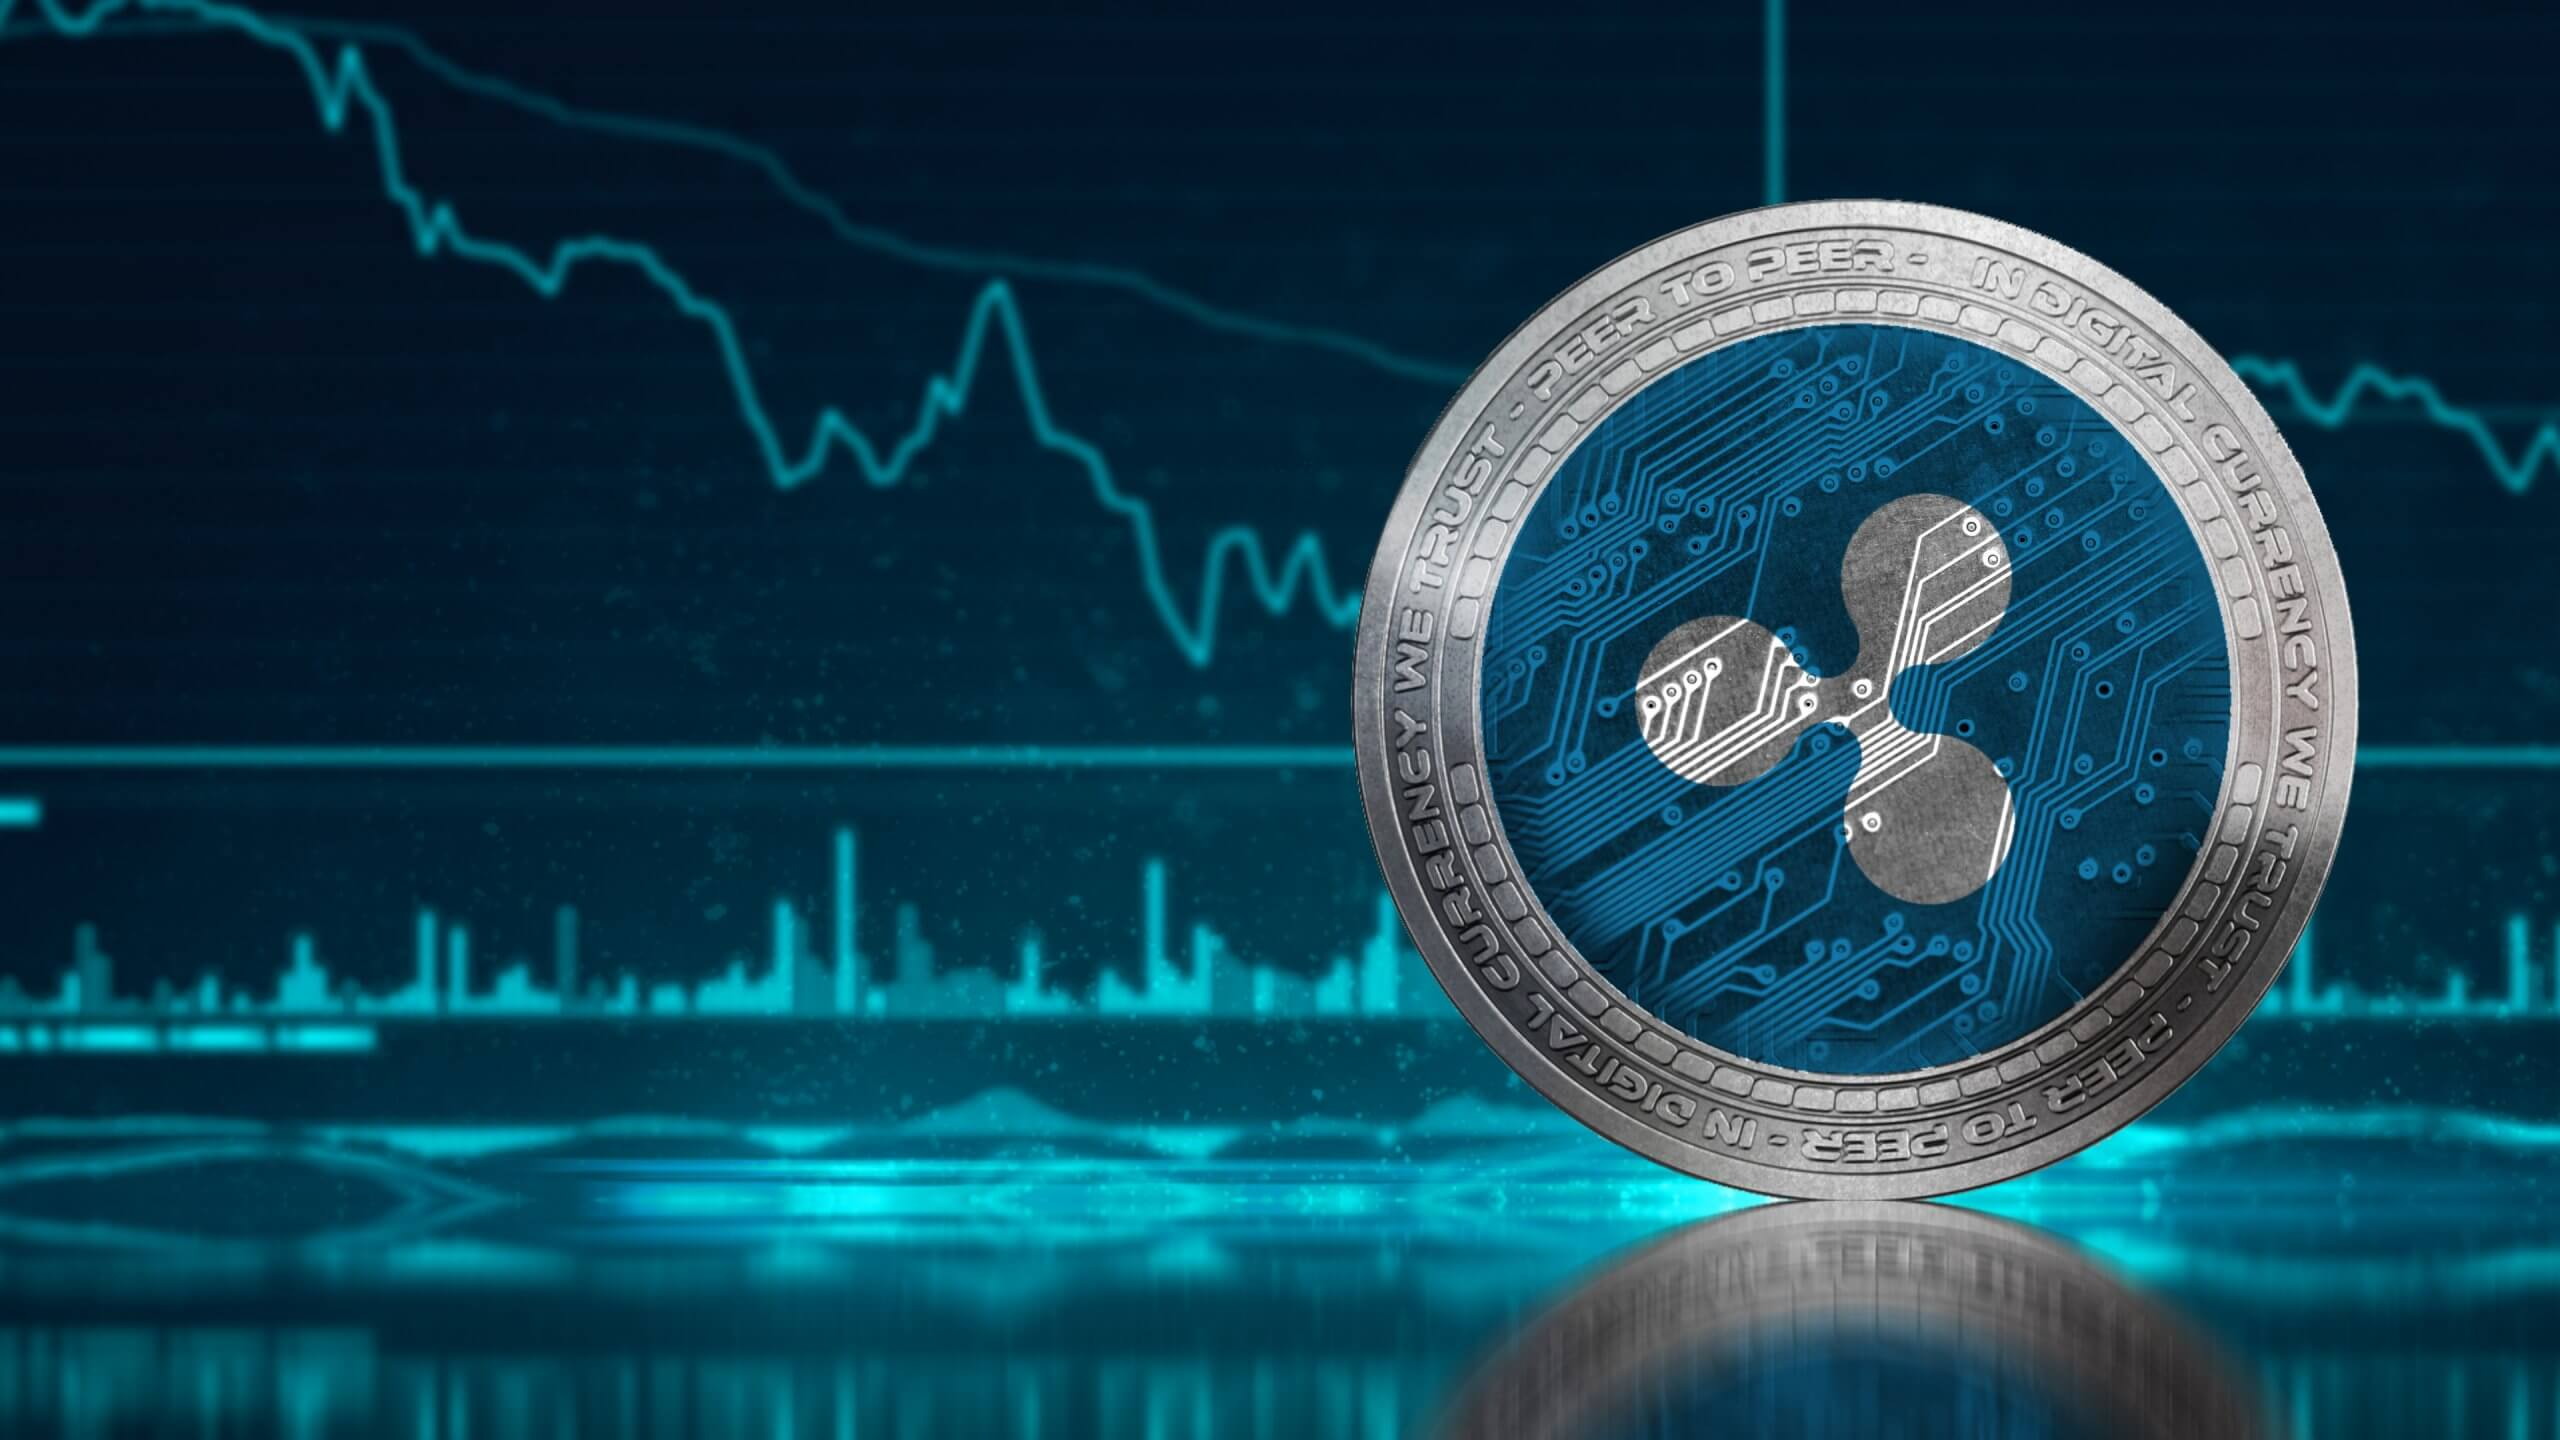 38% of the world's top banks work with Ripple